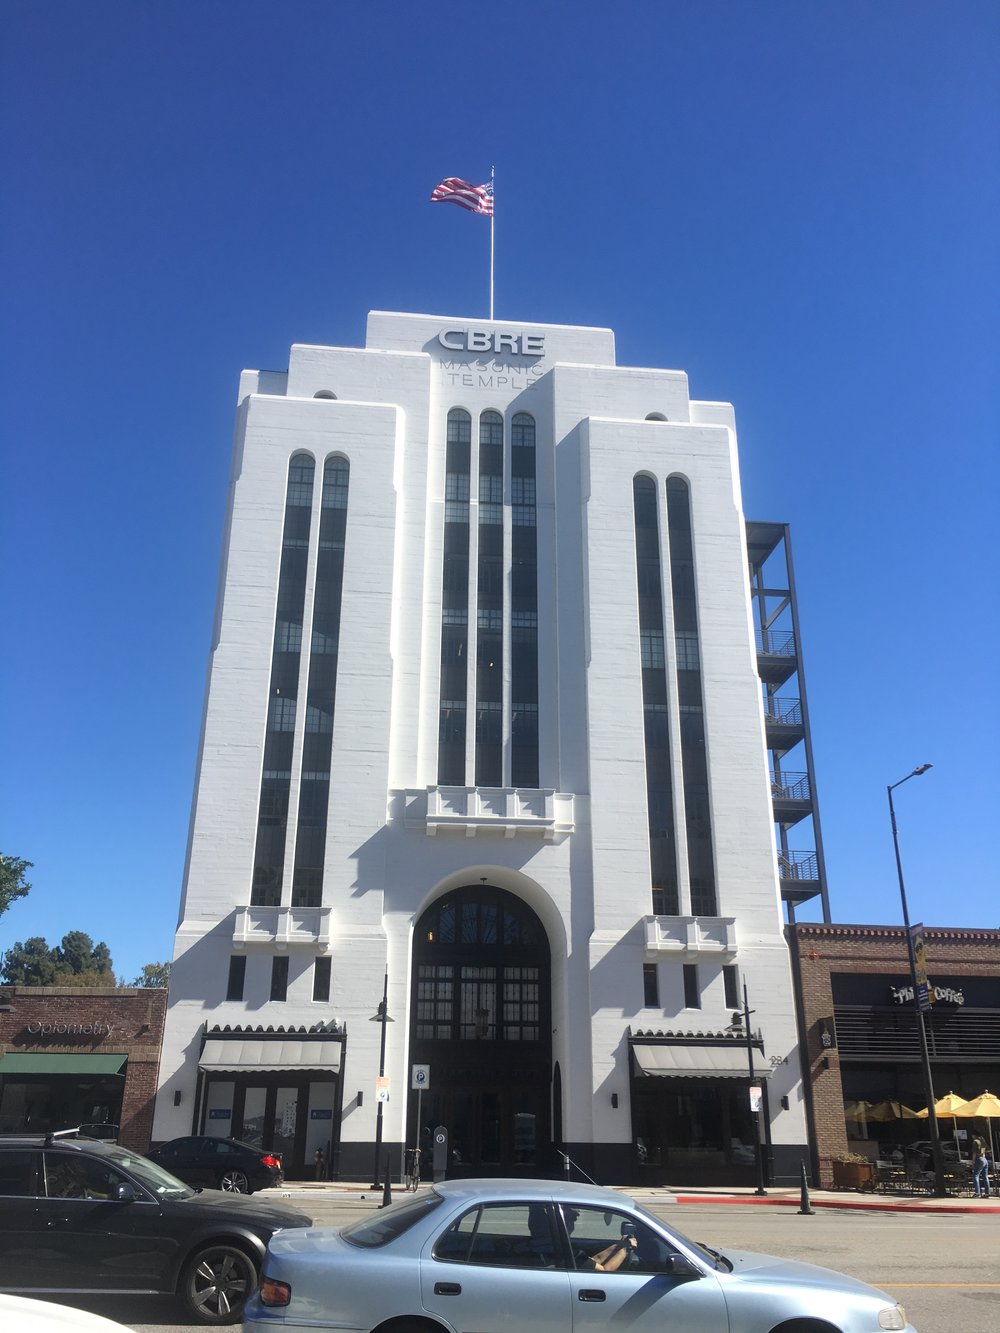 CBRE's iconic historical renovation project of an old masonic temple in Glendale, California -